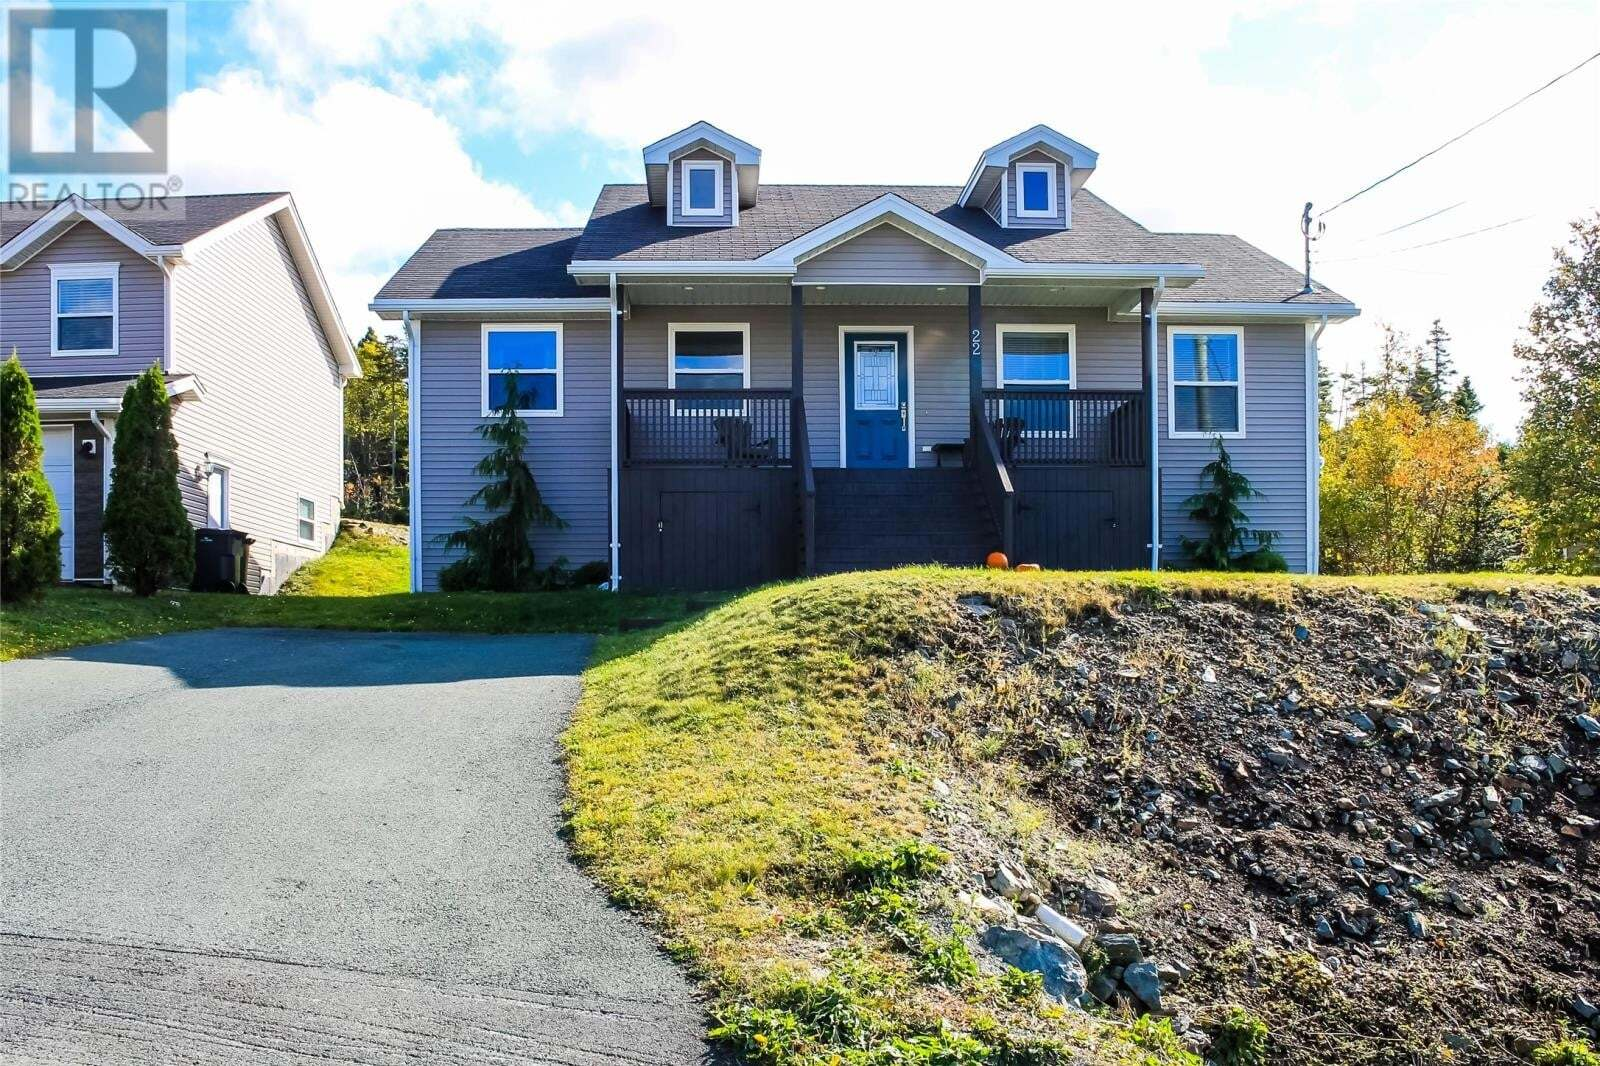 House for sale at 22 School Rd Portugal Cove - St. Philips Newfoundland - MLS: 1222335